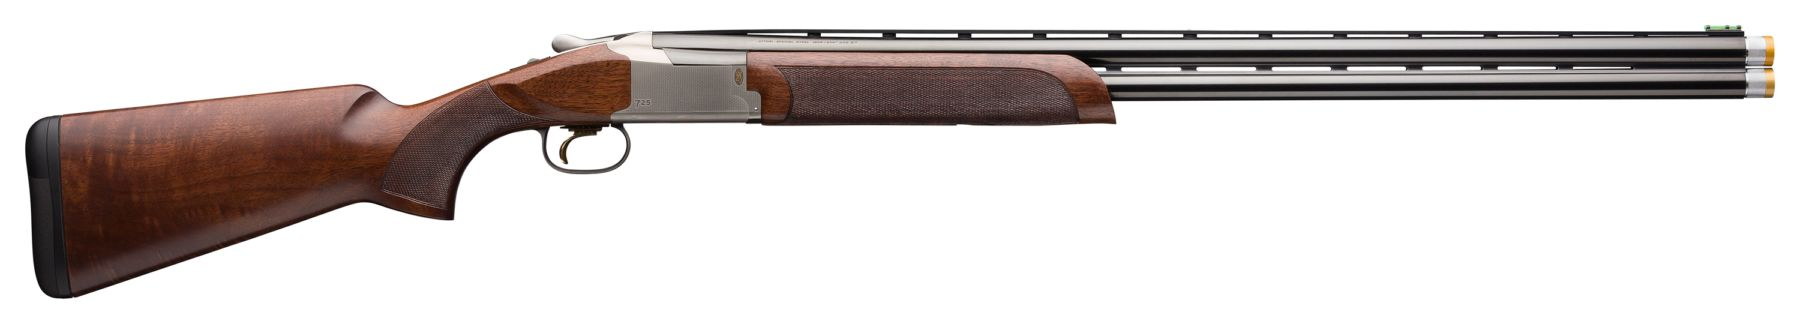 Browning Citori 725 Sporting Non-Ported